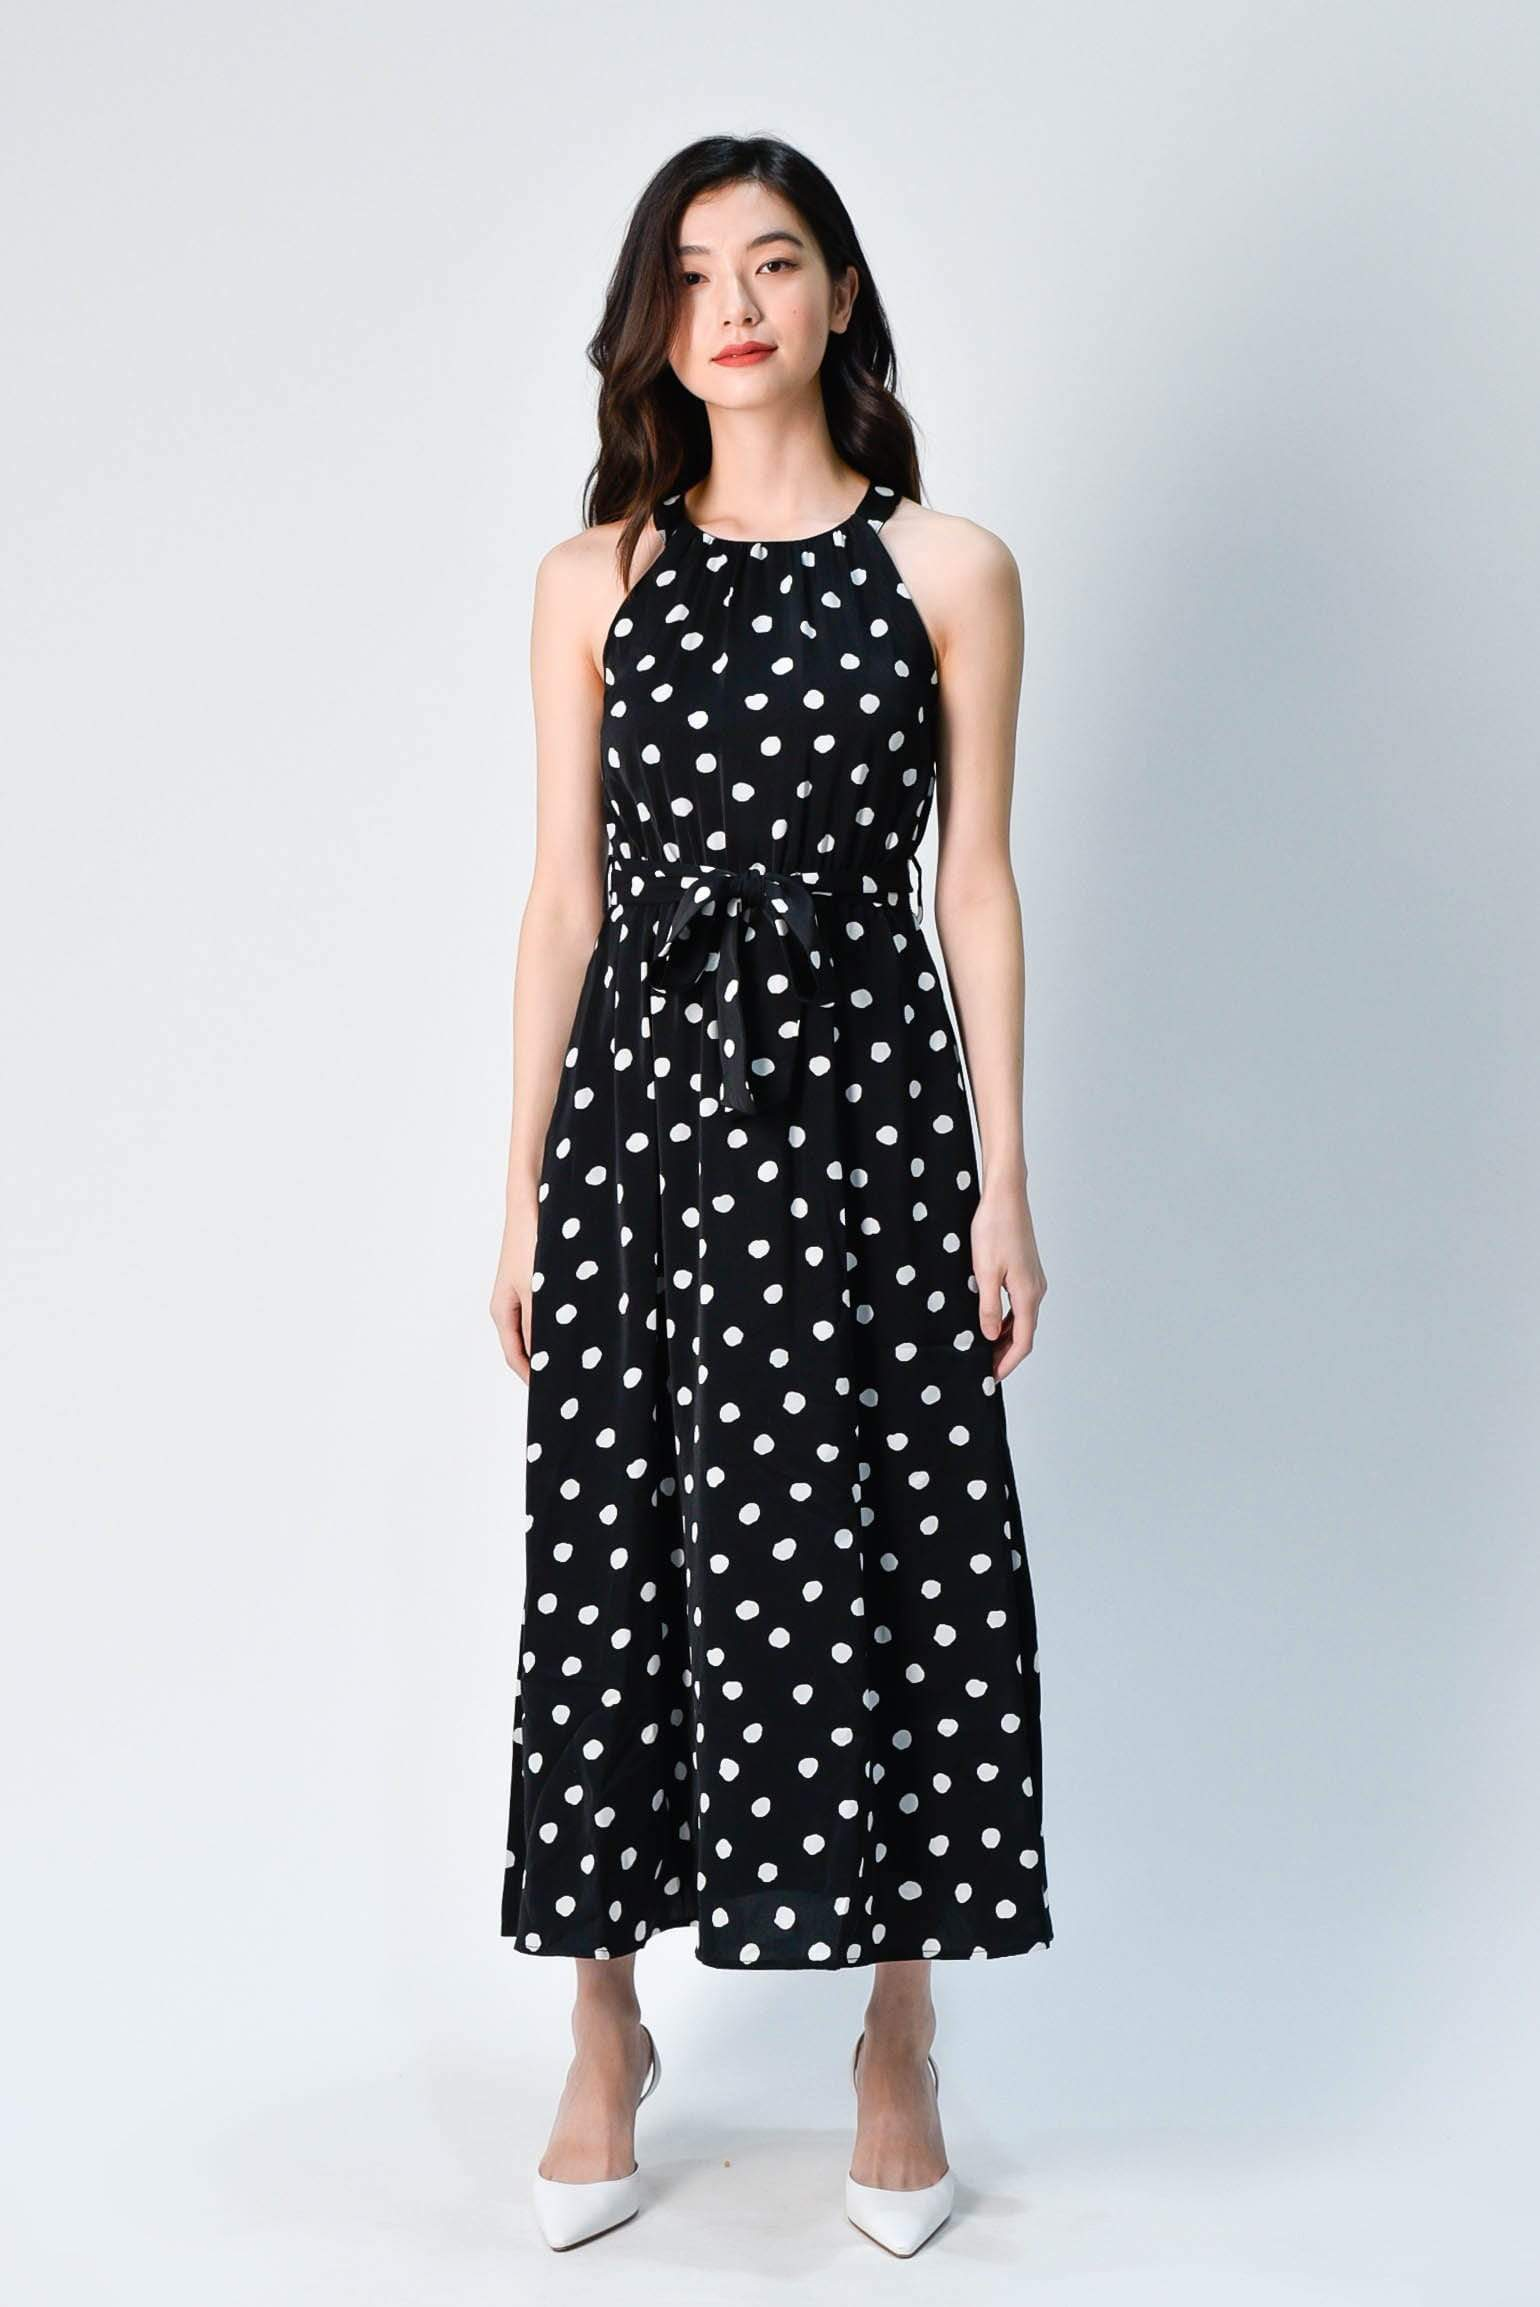 ANTHOS POLKA DOTS HALTERNECK DRESS